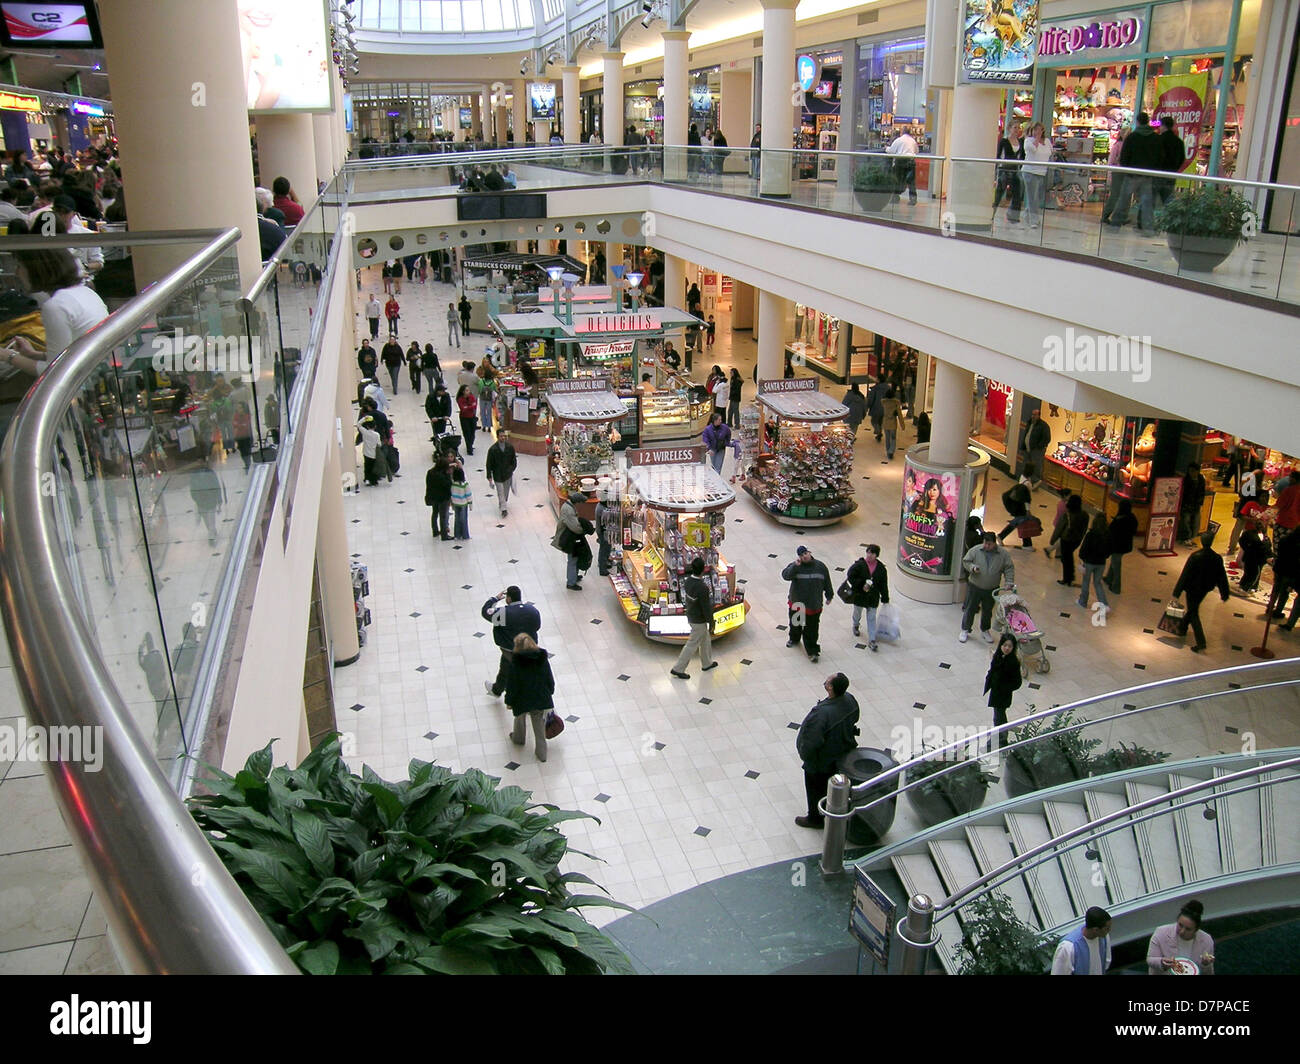 Roosevelt Field Mall Long Island Garden City, New York Stock Photo ...